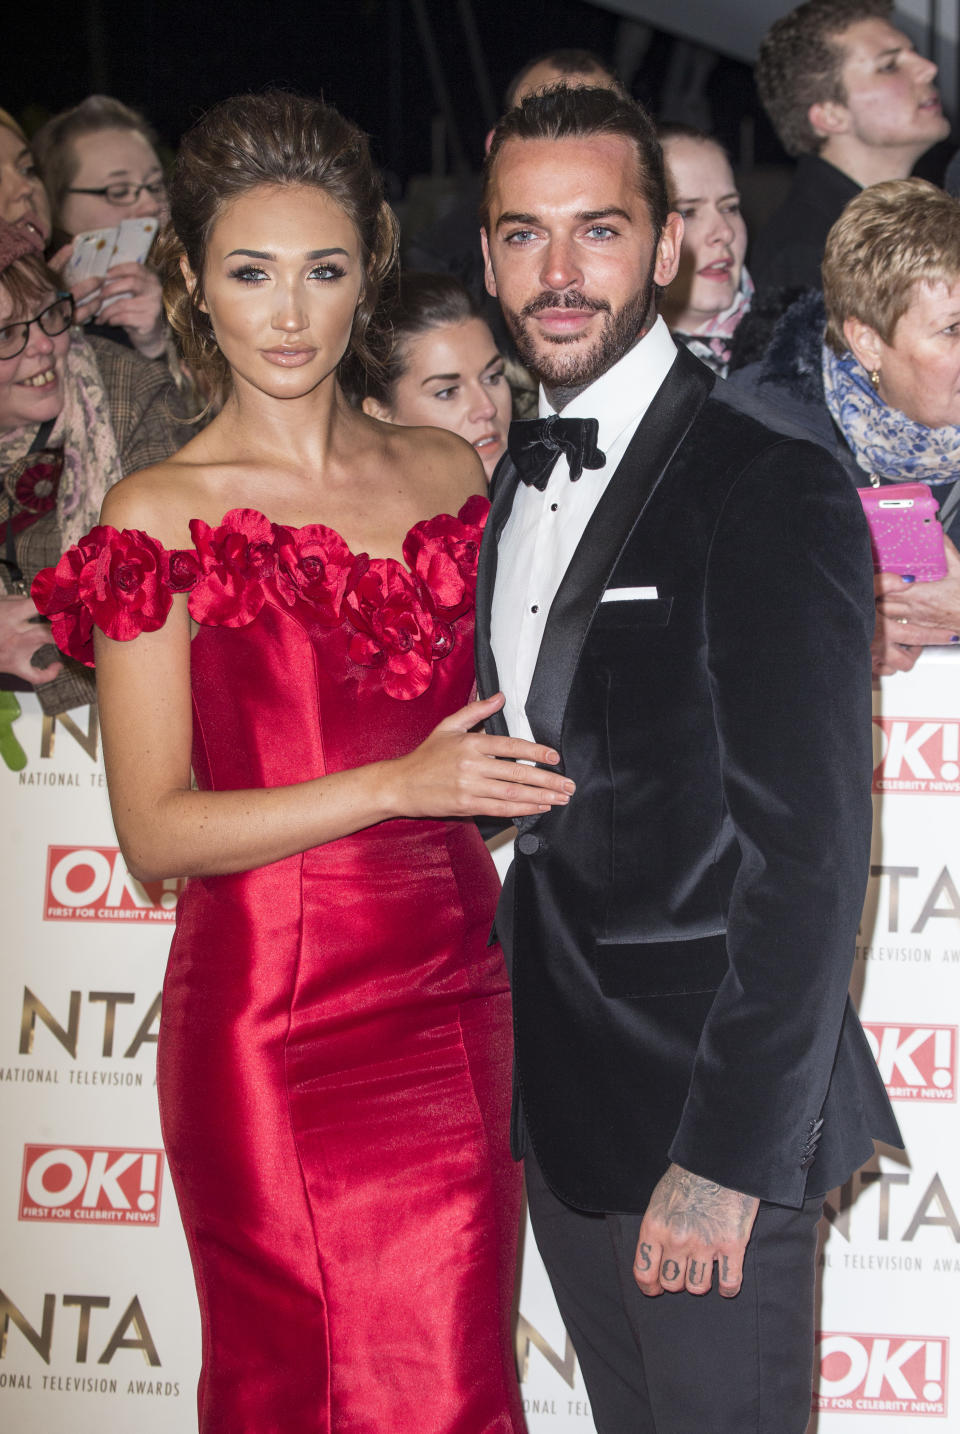 LONDON, ENGLAND - JANUARY 25:   Megan McKenna, and Pete Wicks attend the National Television Awards at The O2 Arena on January 25, 2017 in London, England. .(Photo by Julian Parker/UK Press via Getty Images)